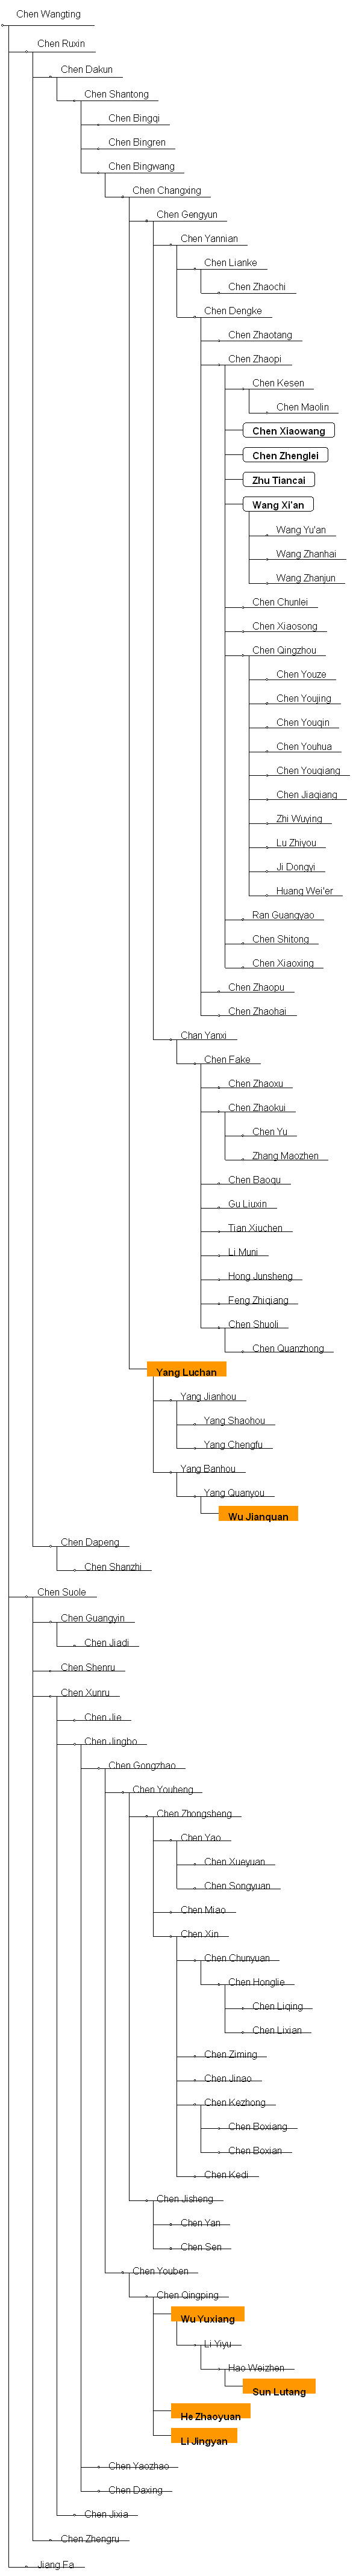 Chen style lineage graph